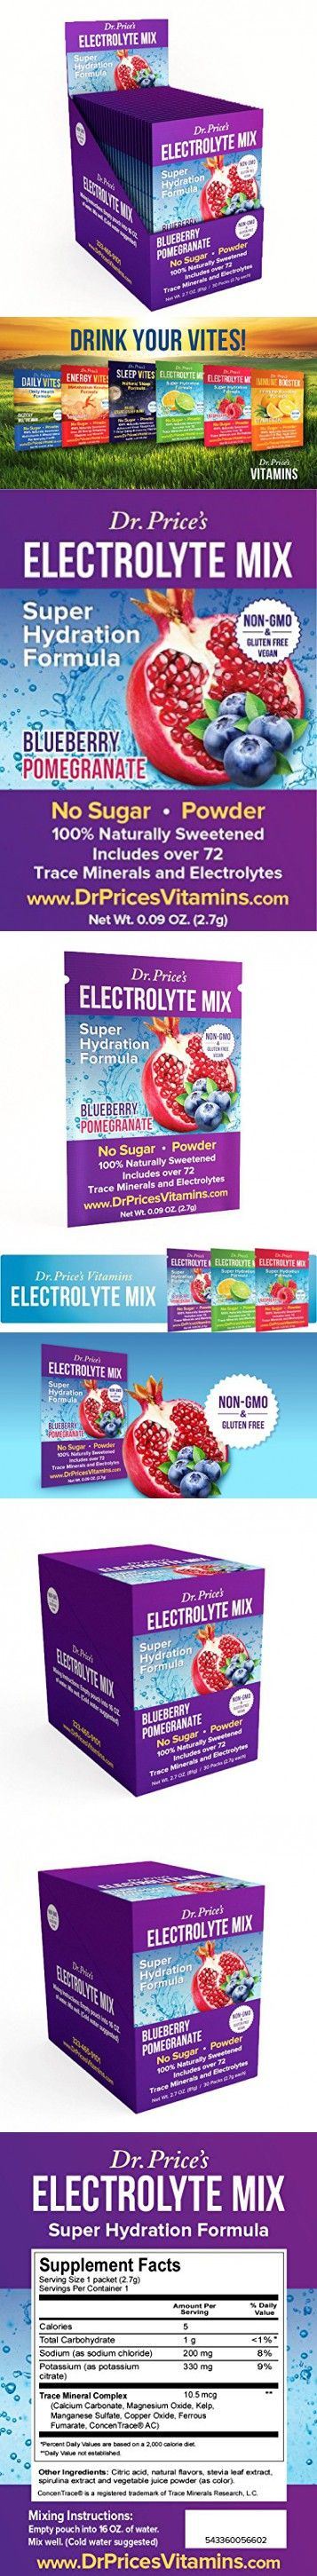 Electrolyte Mix Super Hydration Formula | NEW! Blueberry-Pomegranate Flavor (30 powder packets) Trace Minerals Sports Drink Mix | Dr. Price's Vitamins | Non-GMO, Gluten Free, No Sugar & Vegan